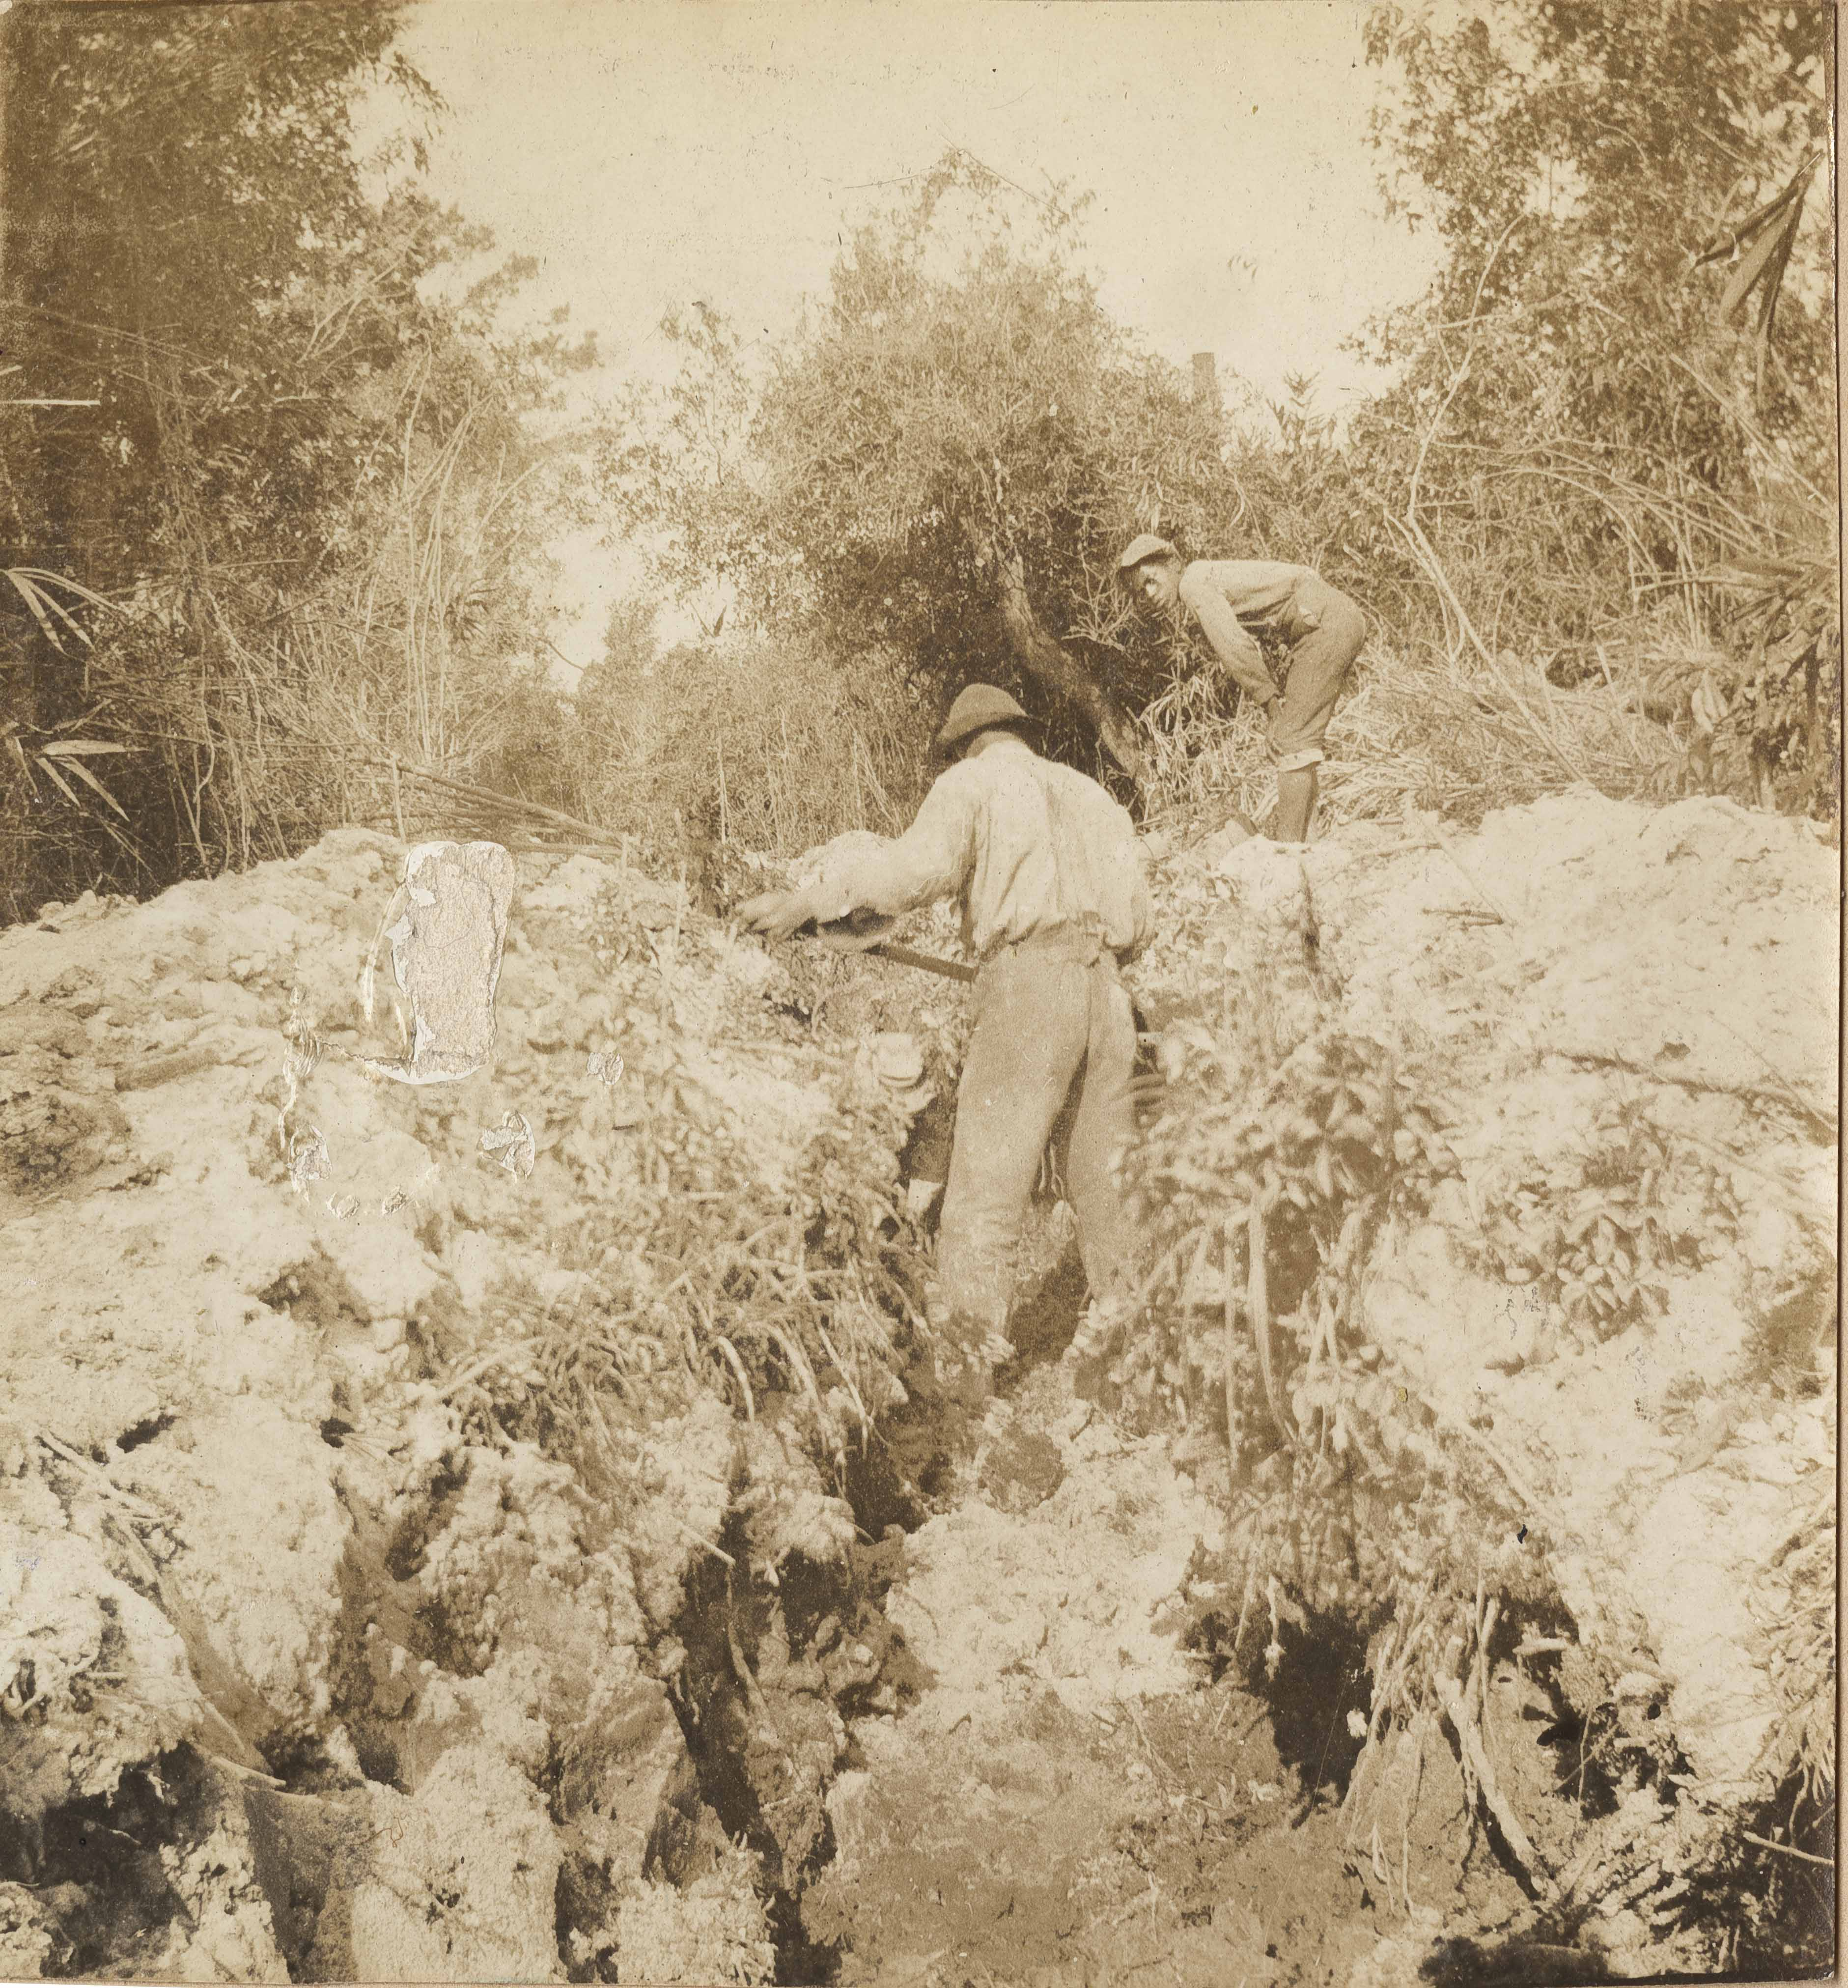 Men clearing trench of brush